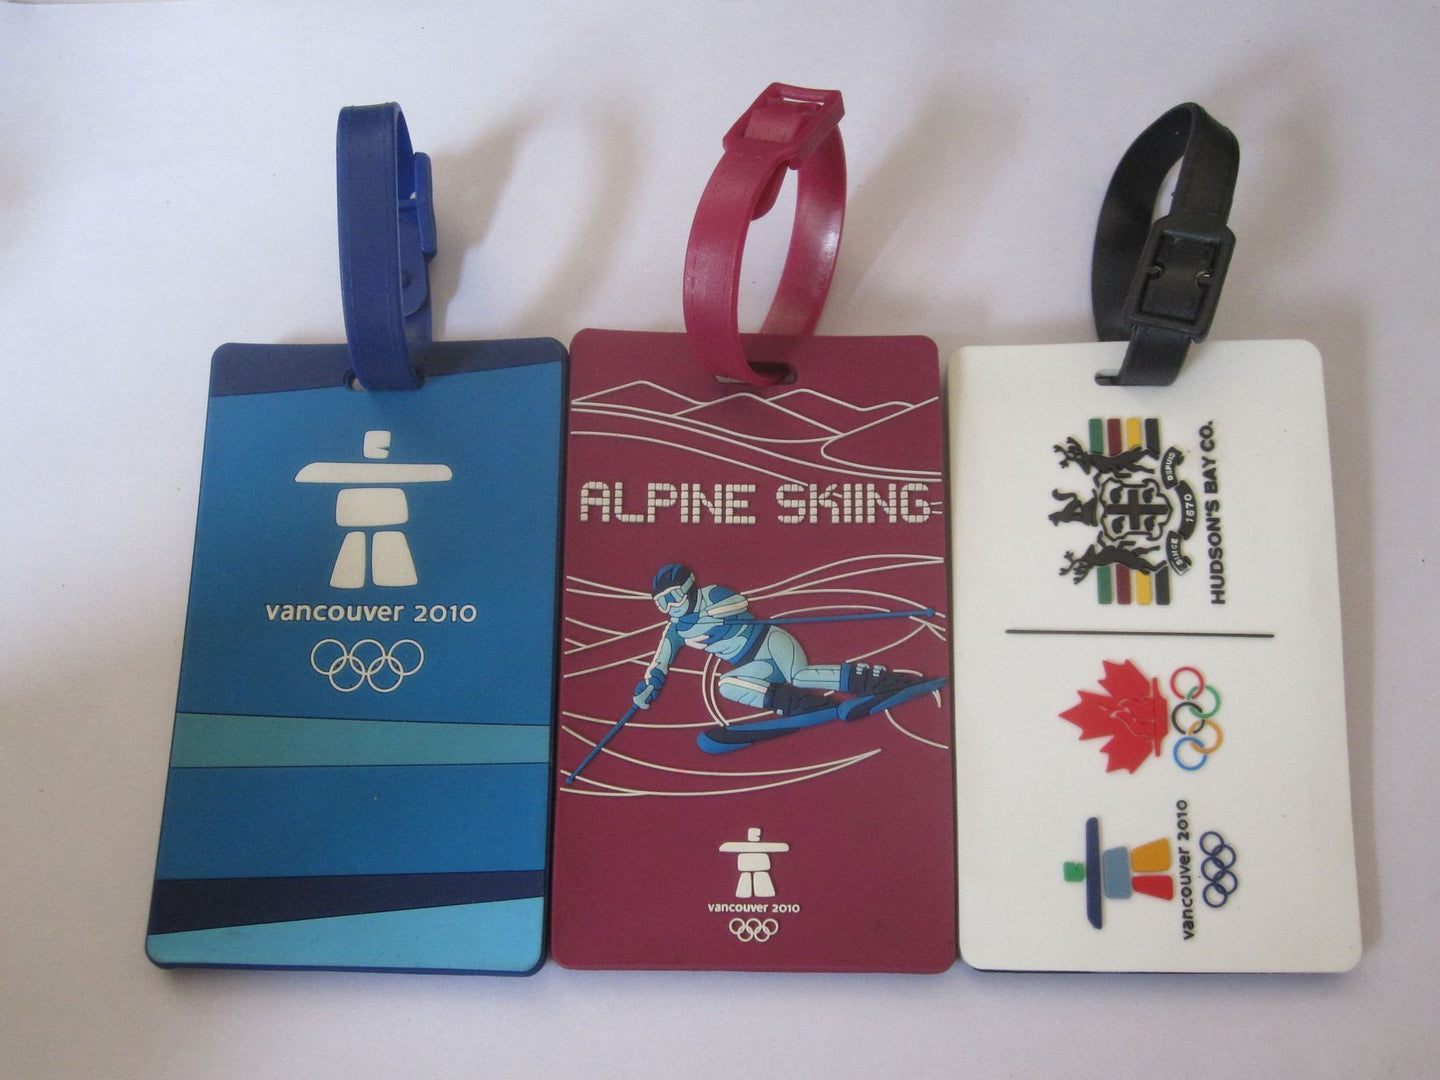 Corporate Gifts - Luggage tags each country logo